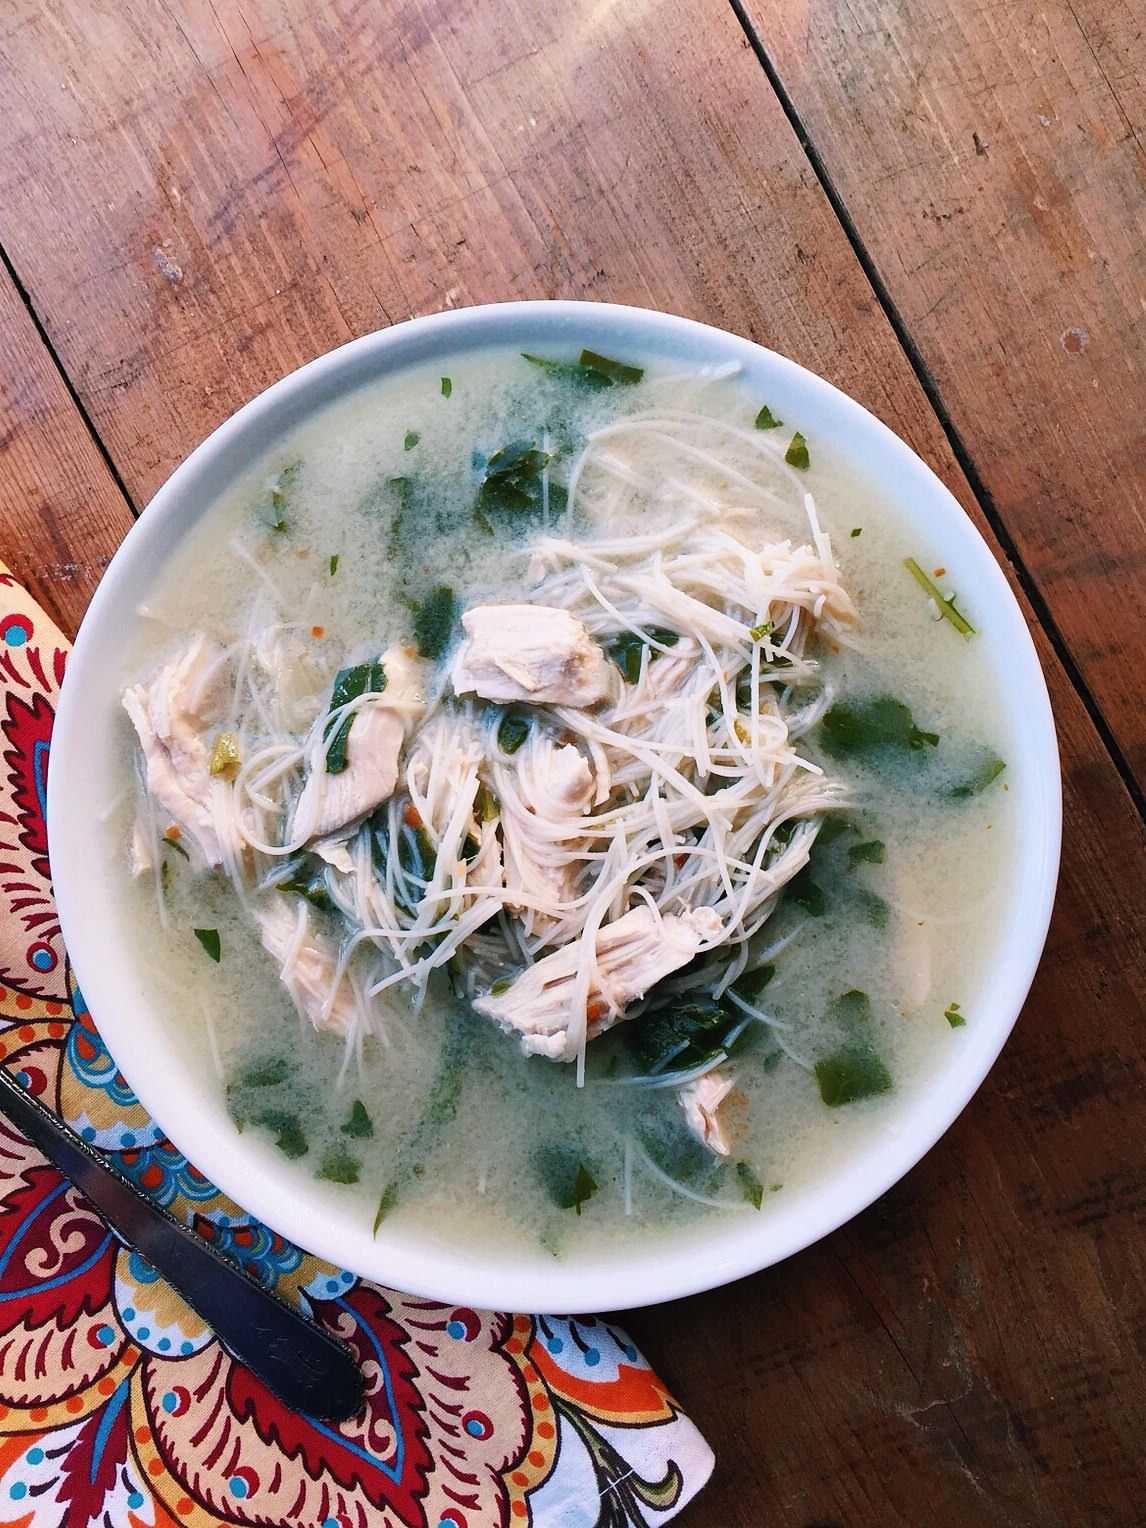 This Thai Chicken Noodle Soup highlights delicate rice vermicelli noodles, ginger, garlic, coconut milk and fish sauce for an amazing aromatic flavor.